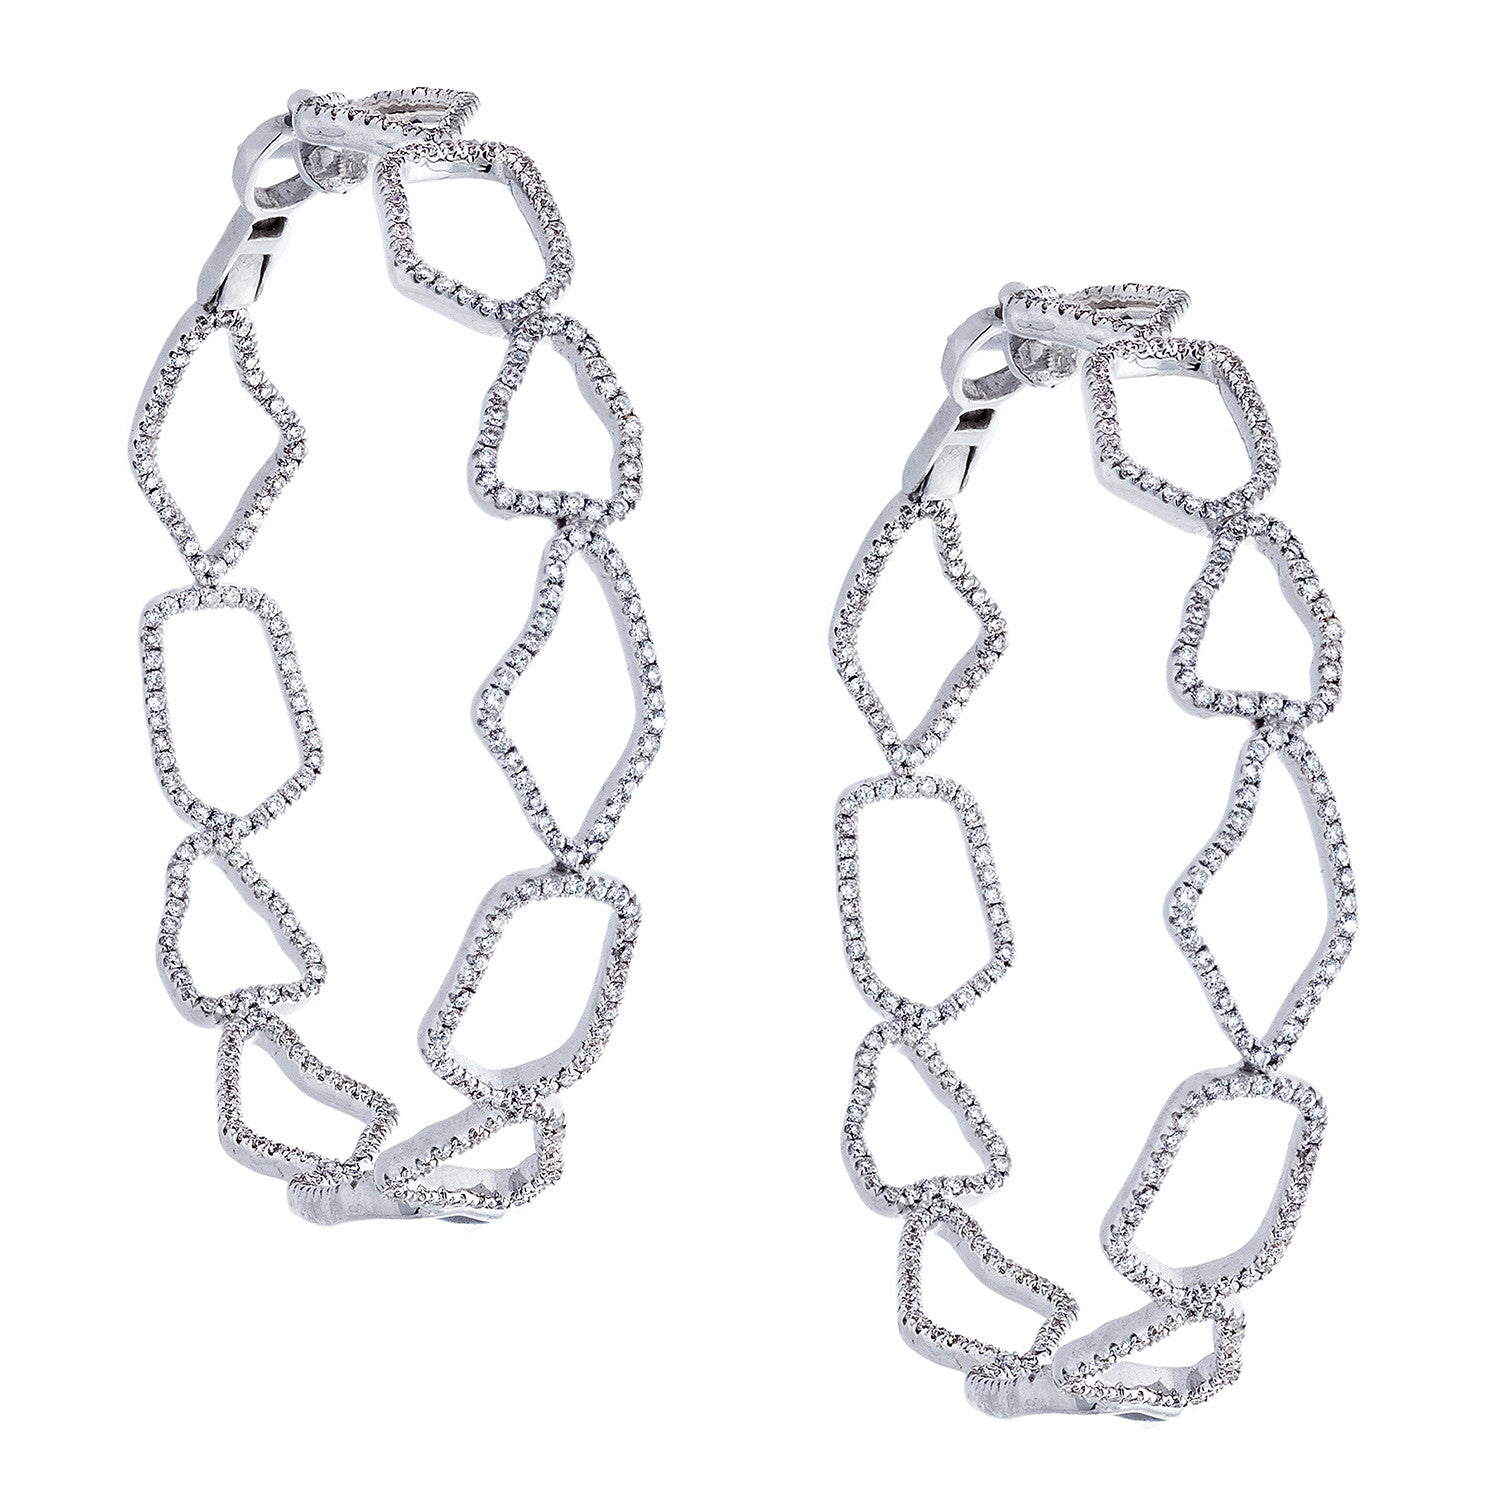 Diamond & 18K White Gold Hoop Earrings - SOLD/CAN BE SPECIAL ORDERED WITH 4-6 WEEKS DELIVERY TIME FRAME